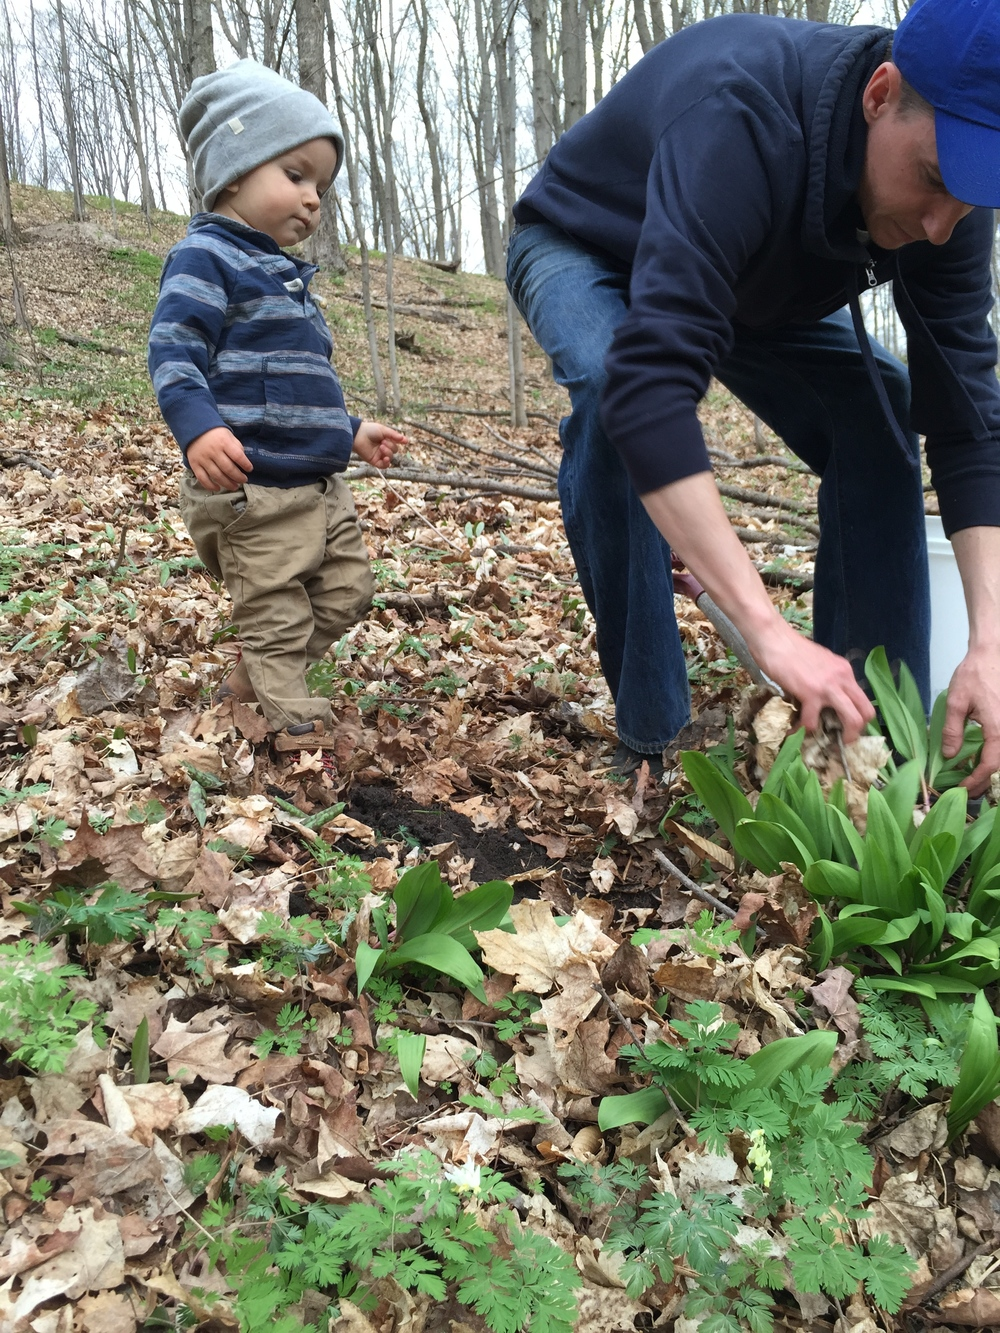 Chef Xel and little Kipp, foraging wild leeks on Pia's property- leeks waiting to be transformed into soups and other dishes in Spring.